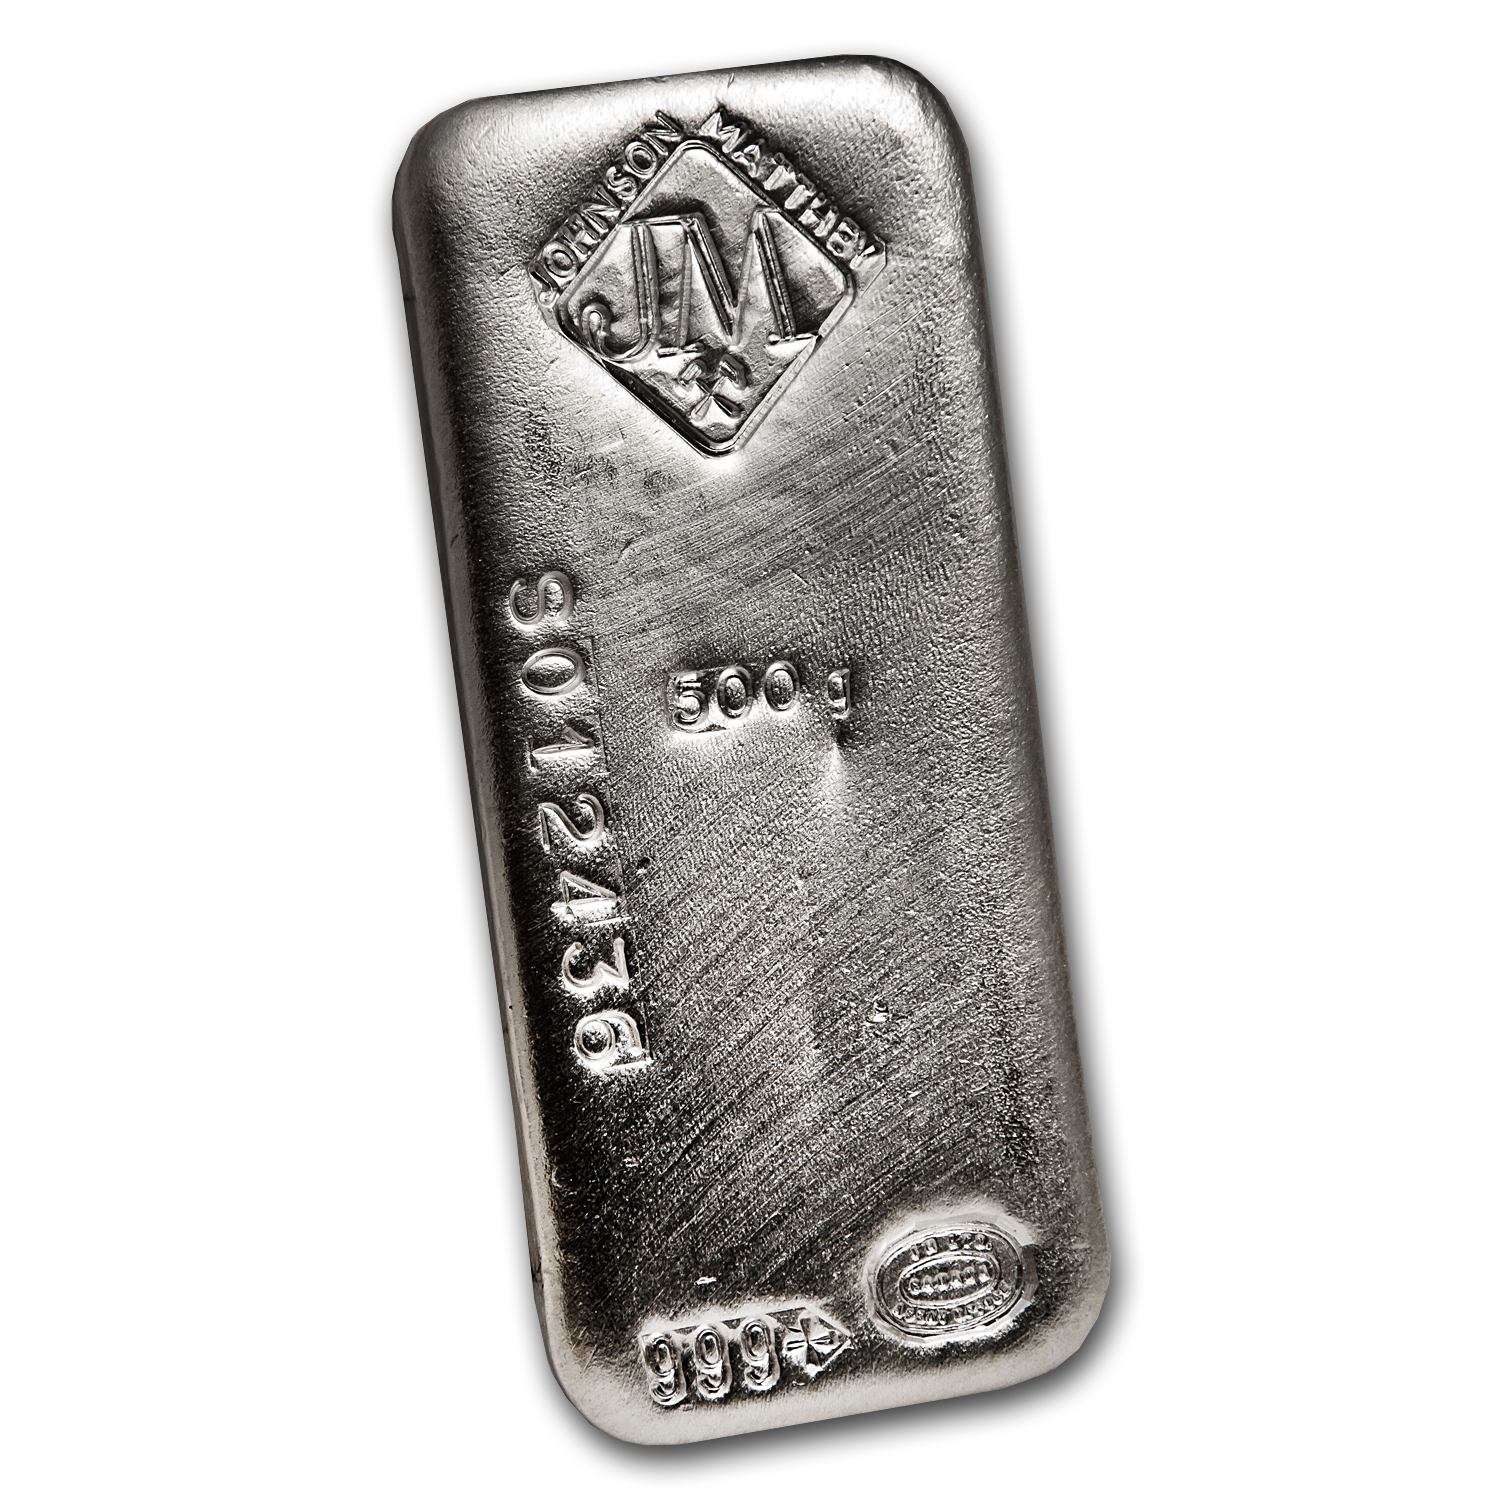 1/2 kilo Silver Bar - Johnson Matthey (Poured)